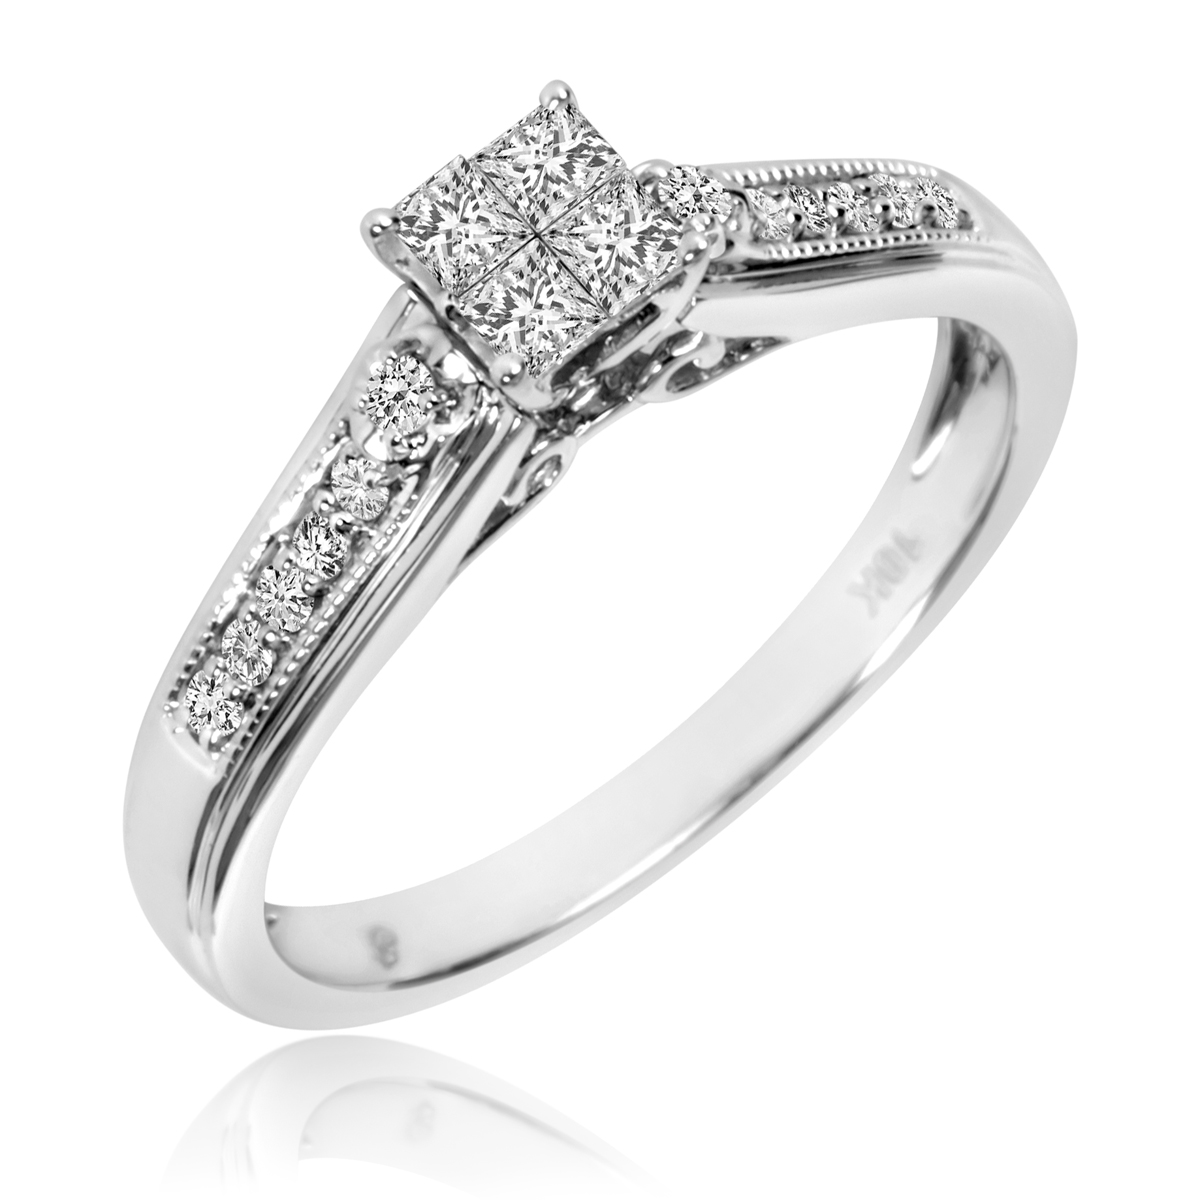 1 3 carat tw diamond ladies39 bridal wedding ring set 10k for Wedding ring sets white gold